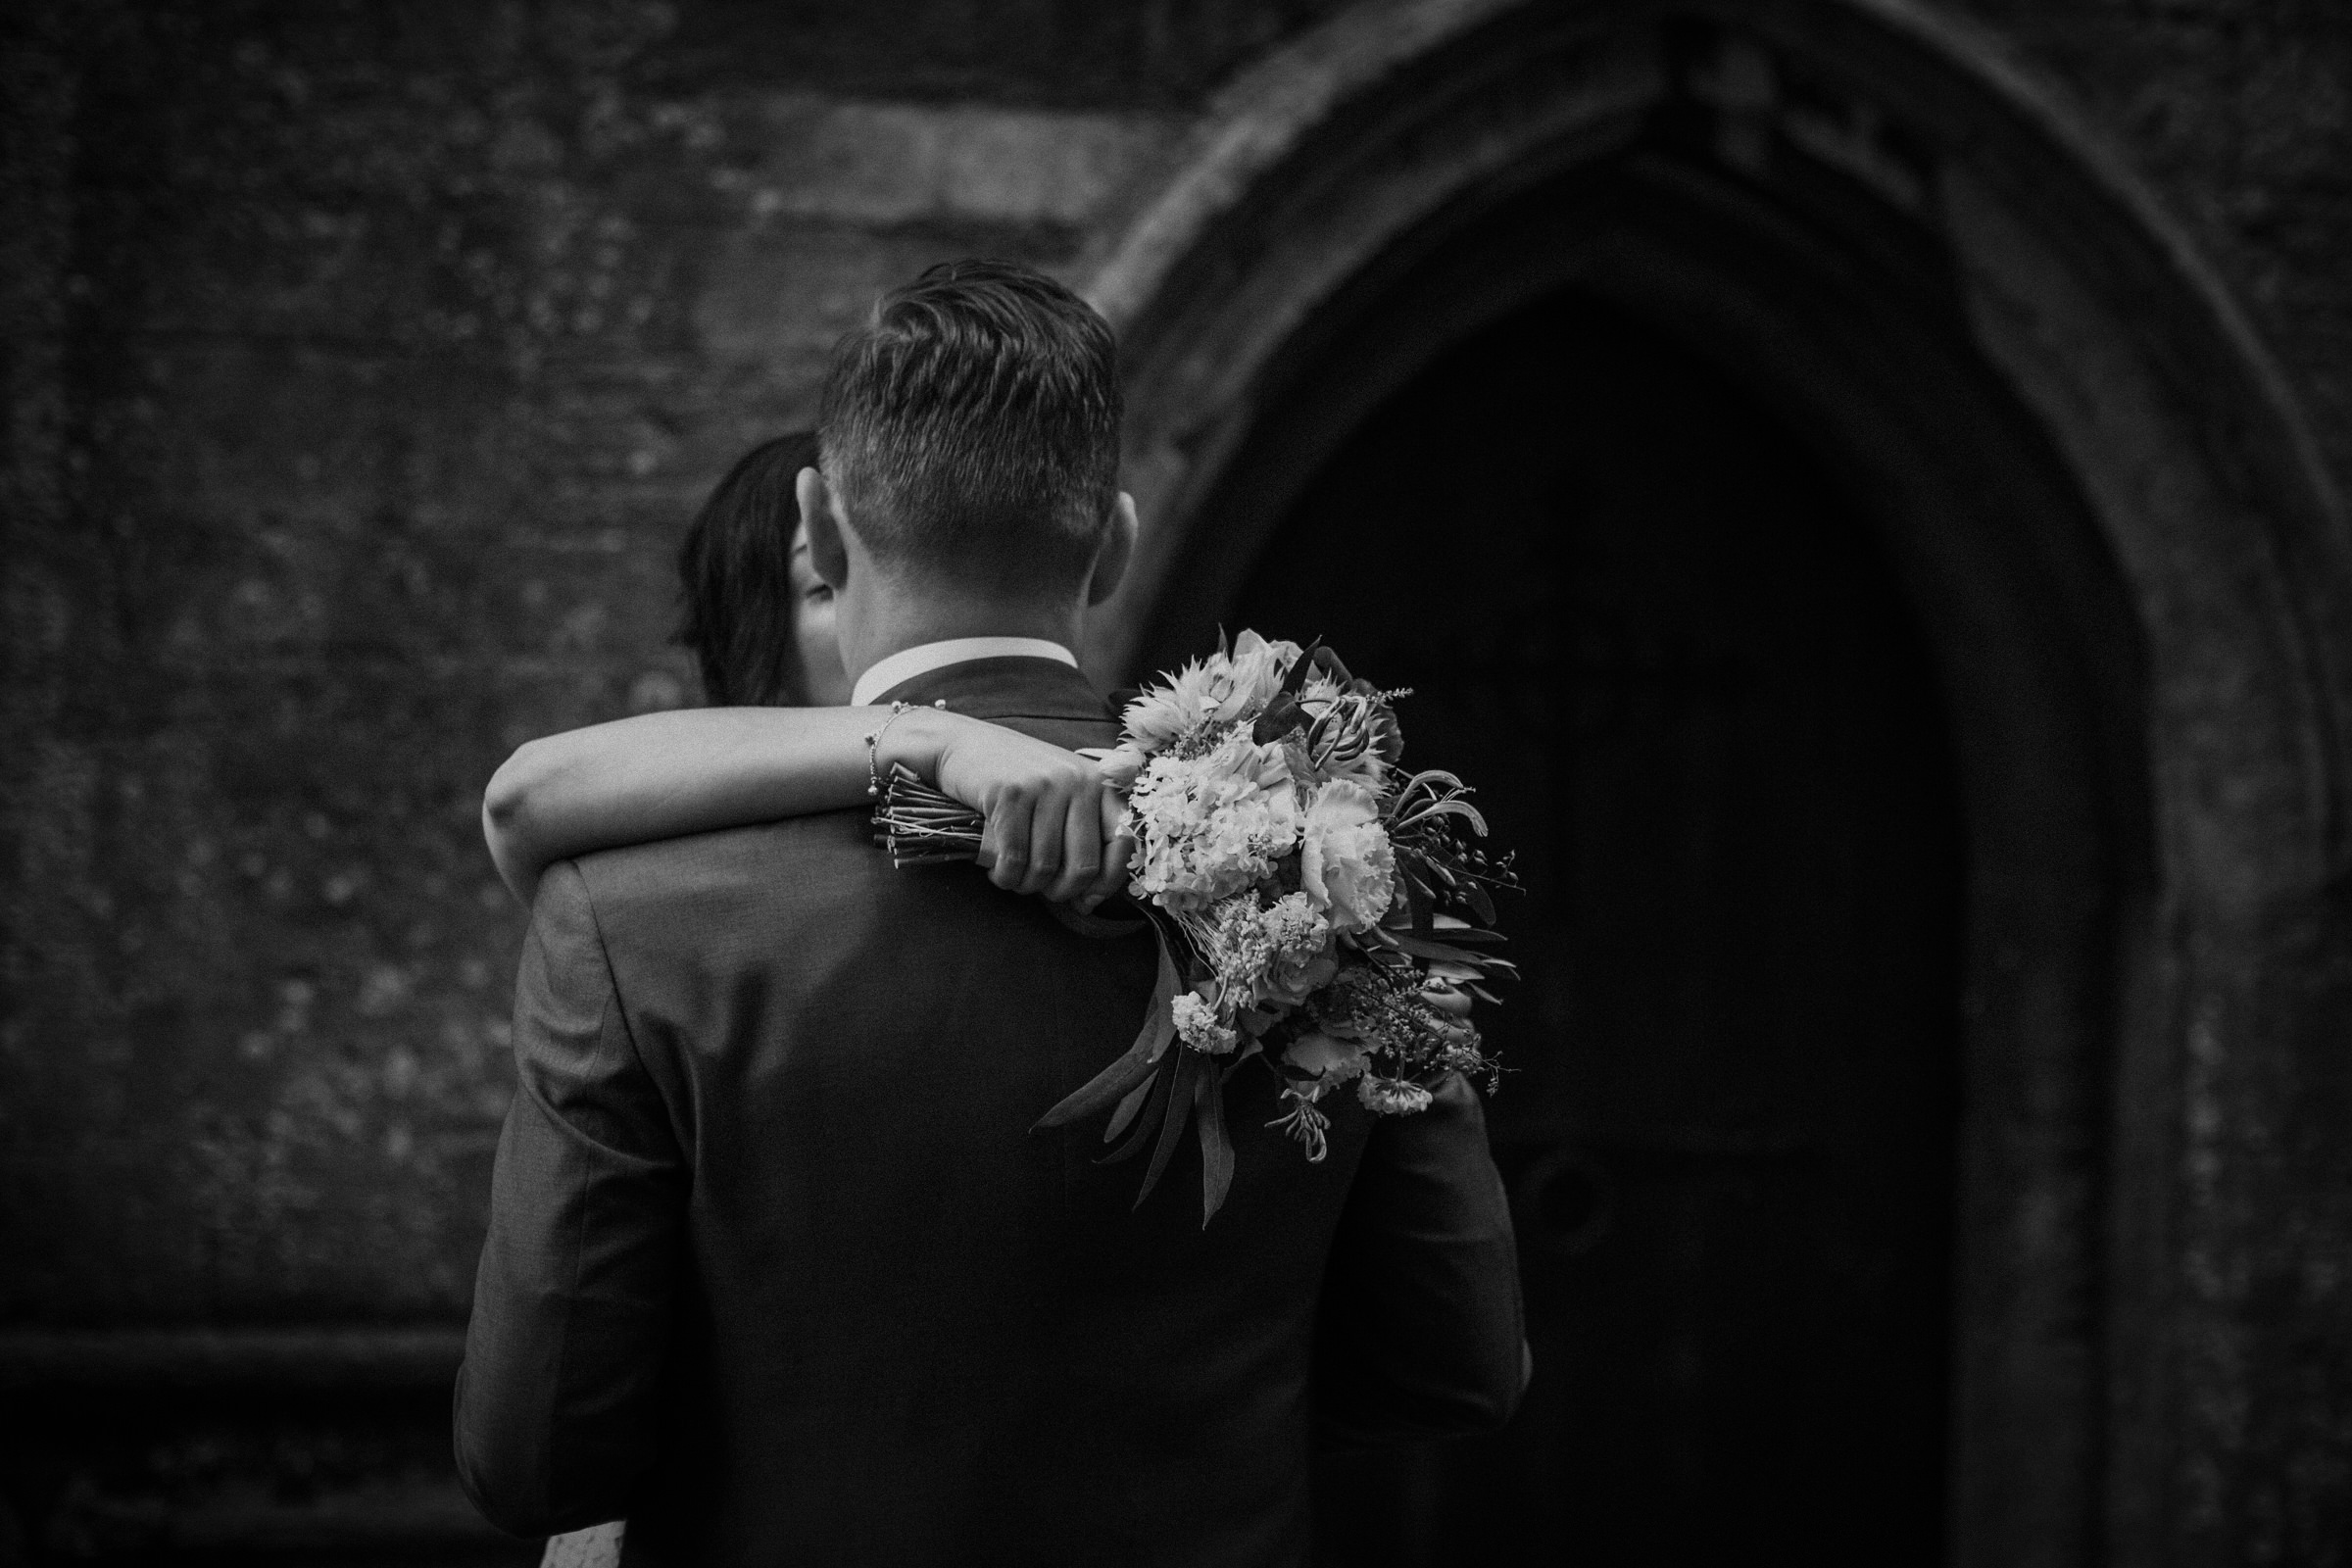 Bouquet shot as bride embraces groom - photo by Tomas Juskaitis Photography